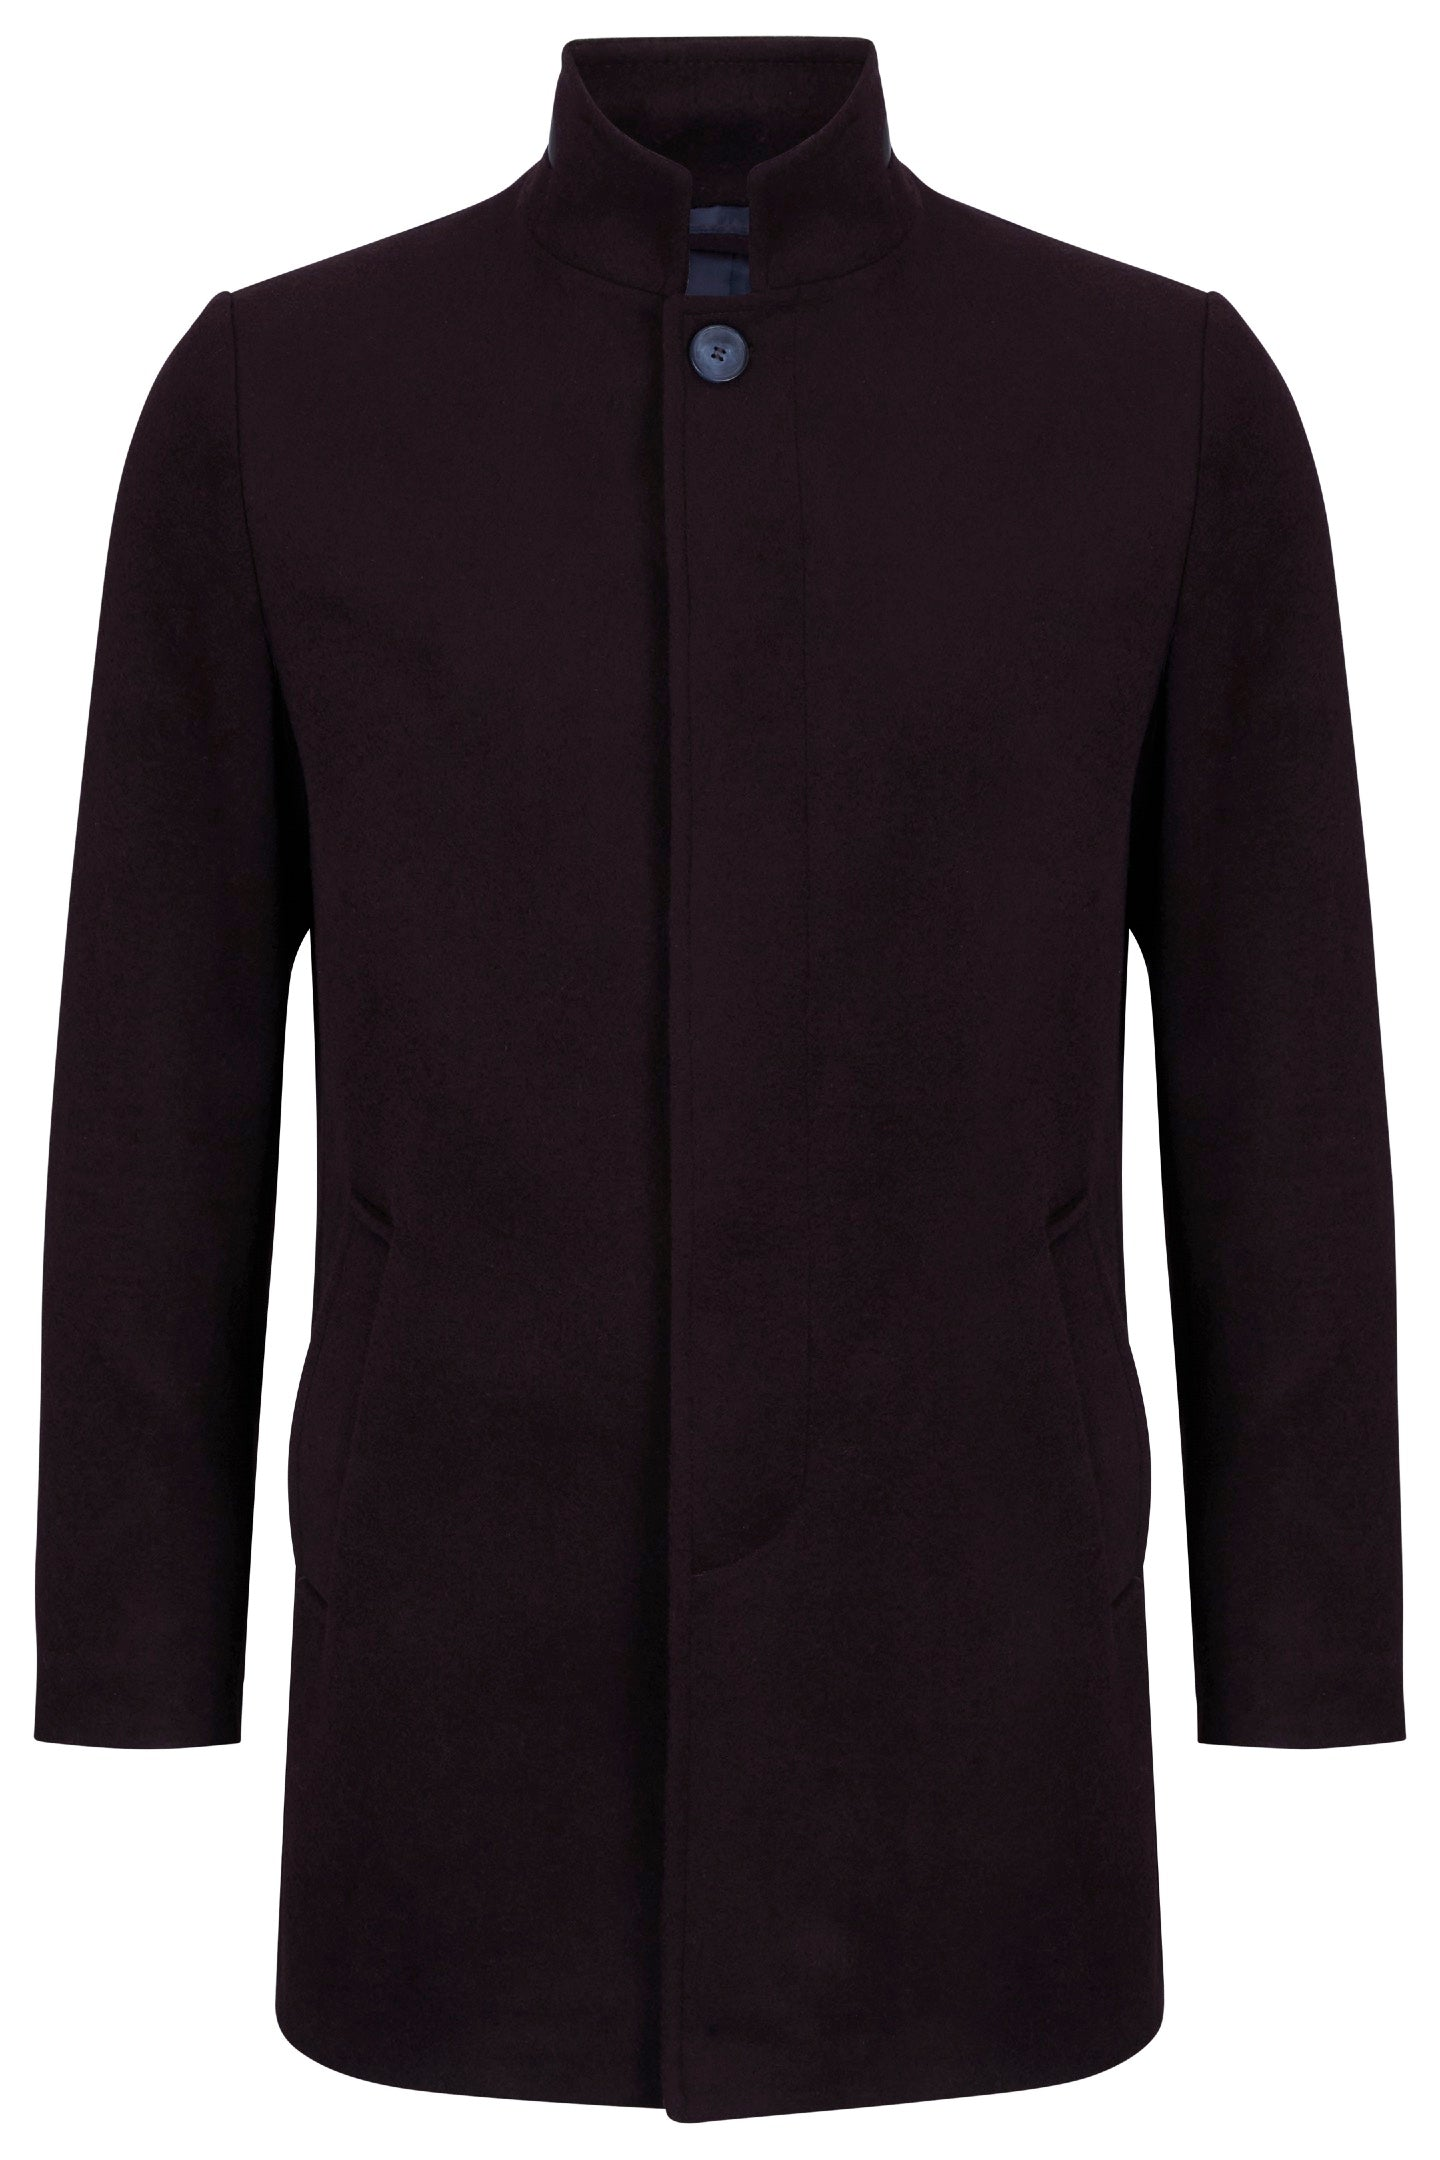 Benetti ELY Bordo Wool Coat